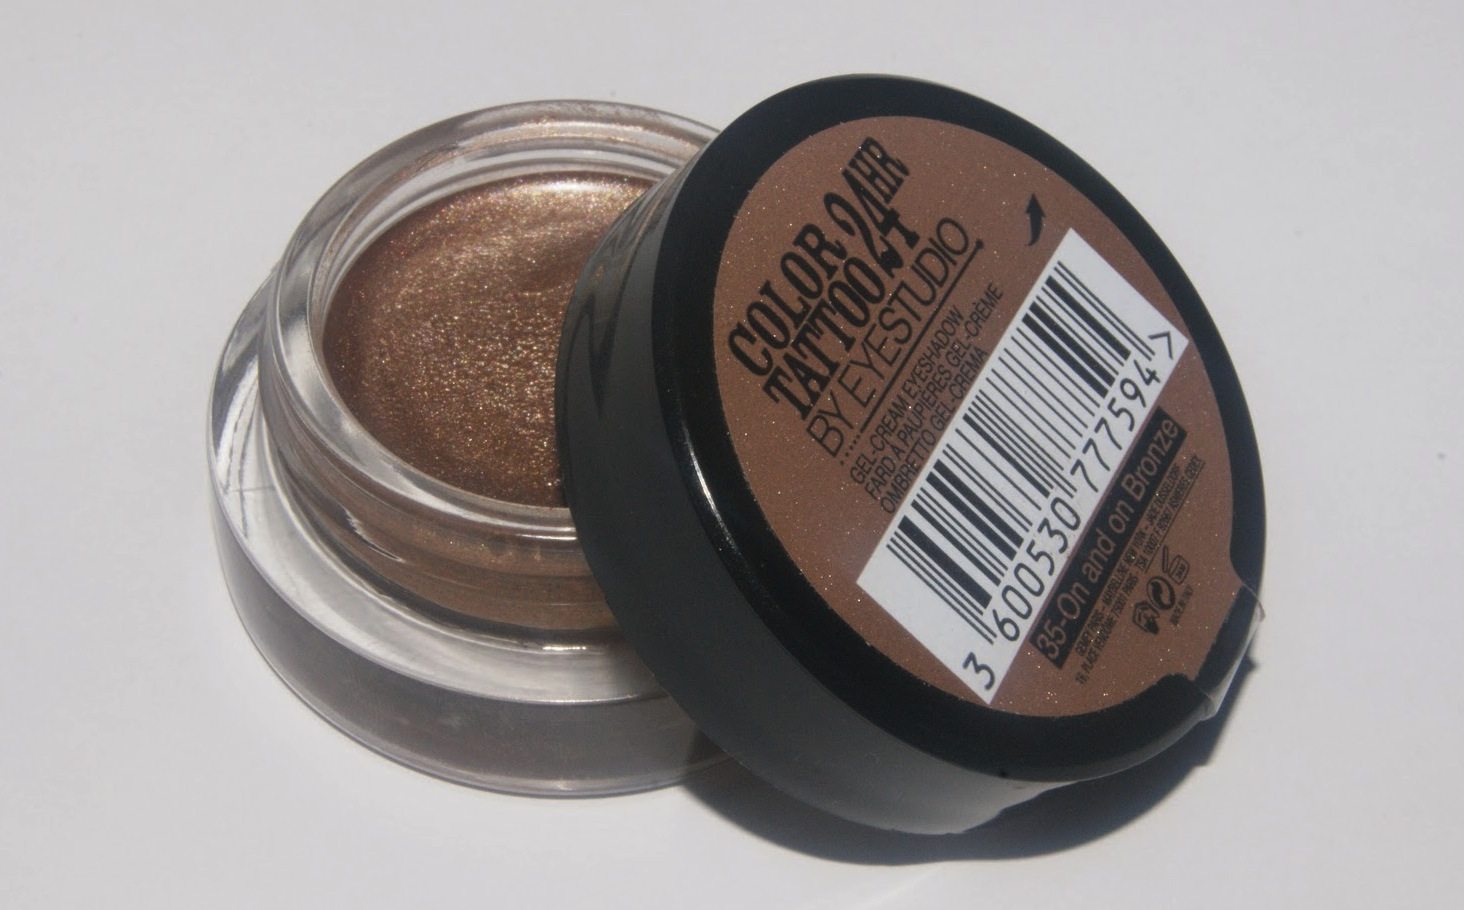 maybelline-color-tattoo-24hr-eyeshadow-on-and-on-bronze-review-003